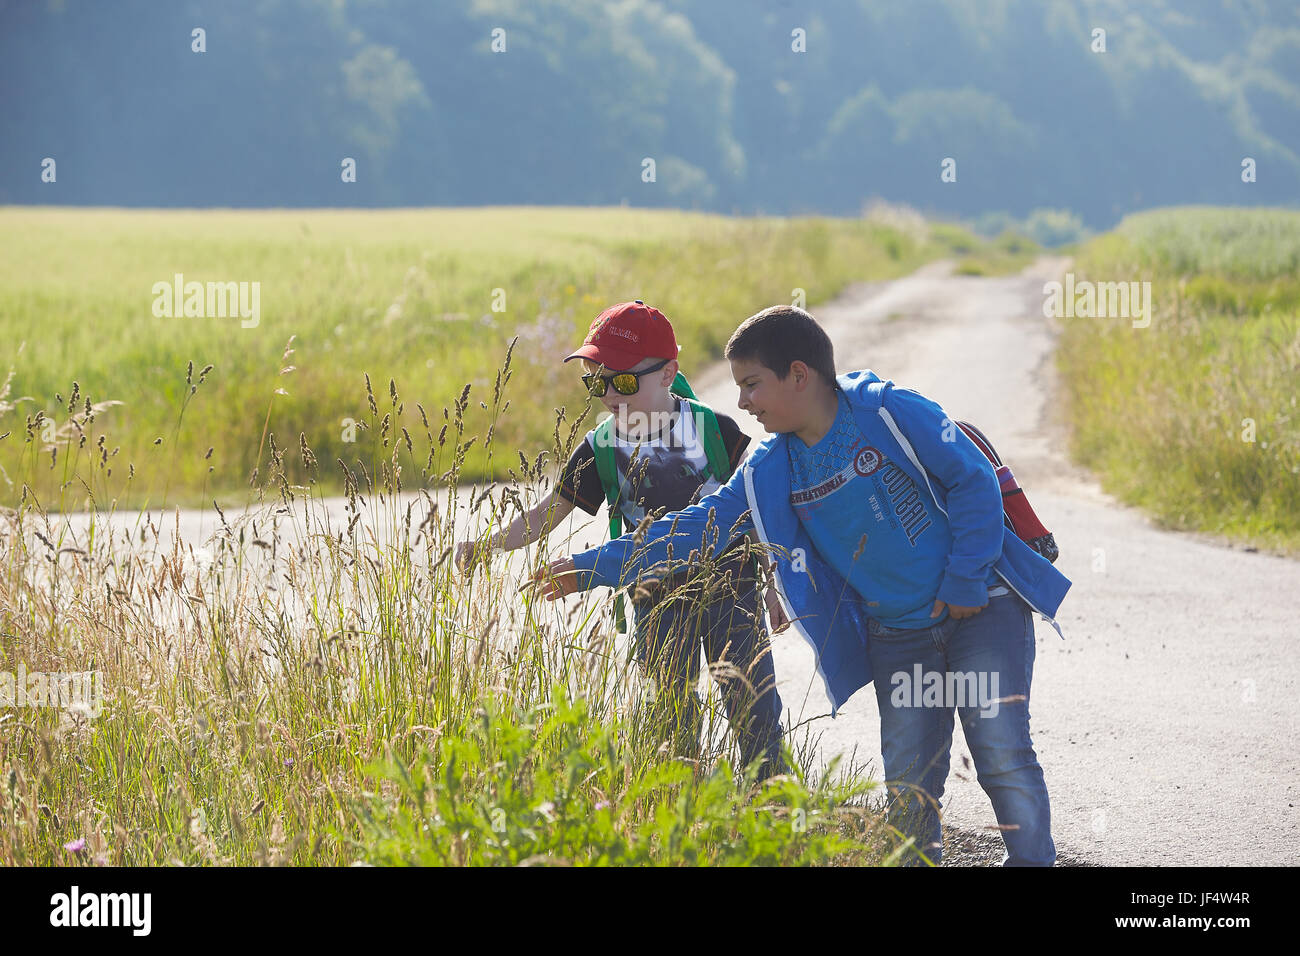 Niederahr, Germany. 14th June, 2017. Noah (L) and Kerem from Ahrbach primary school in the countryside in Niederahr, - Stock Image